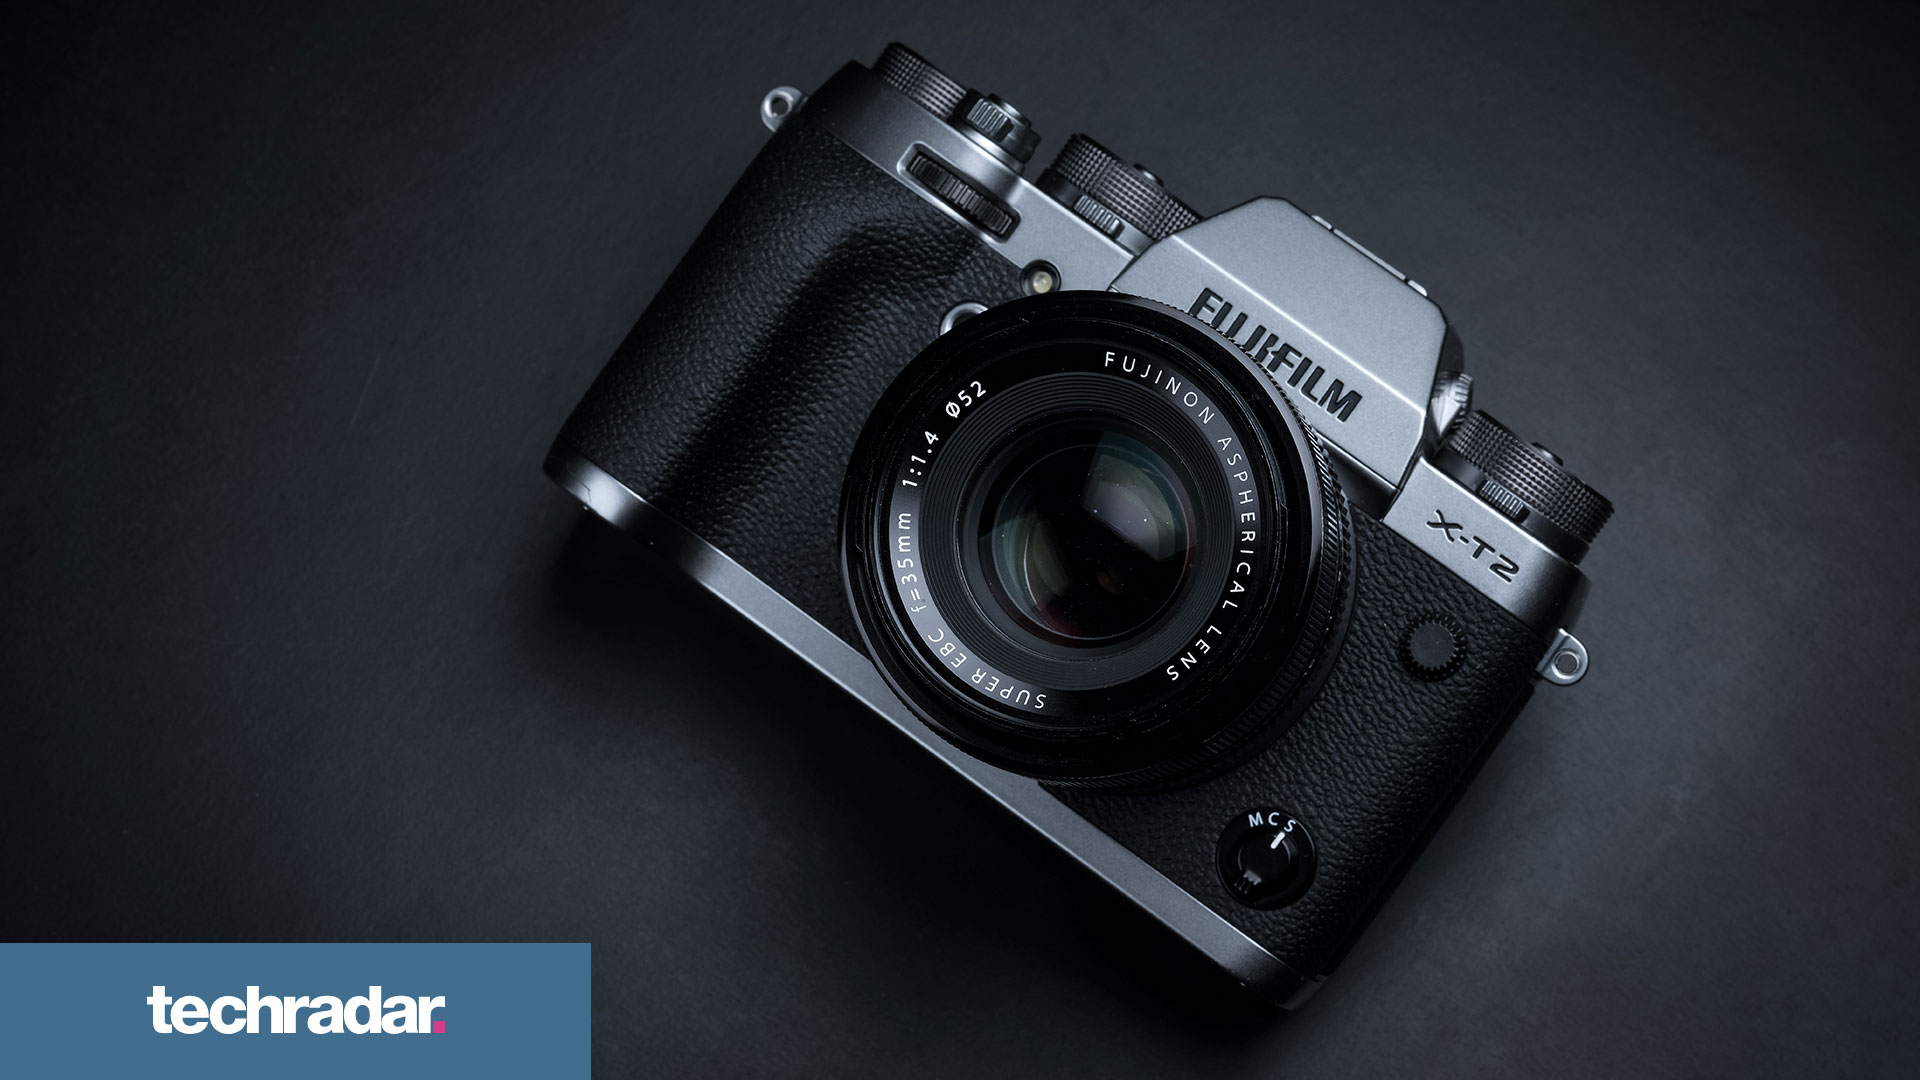 Fujifilm's new update just broke the X-T2